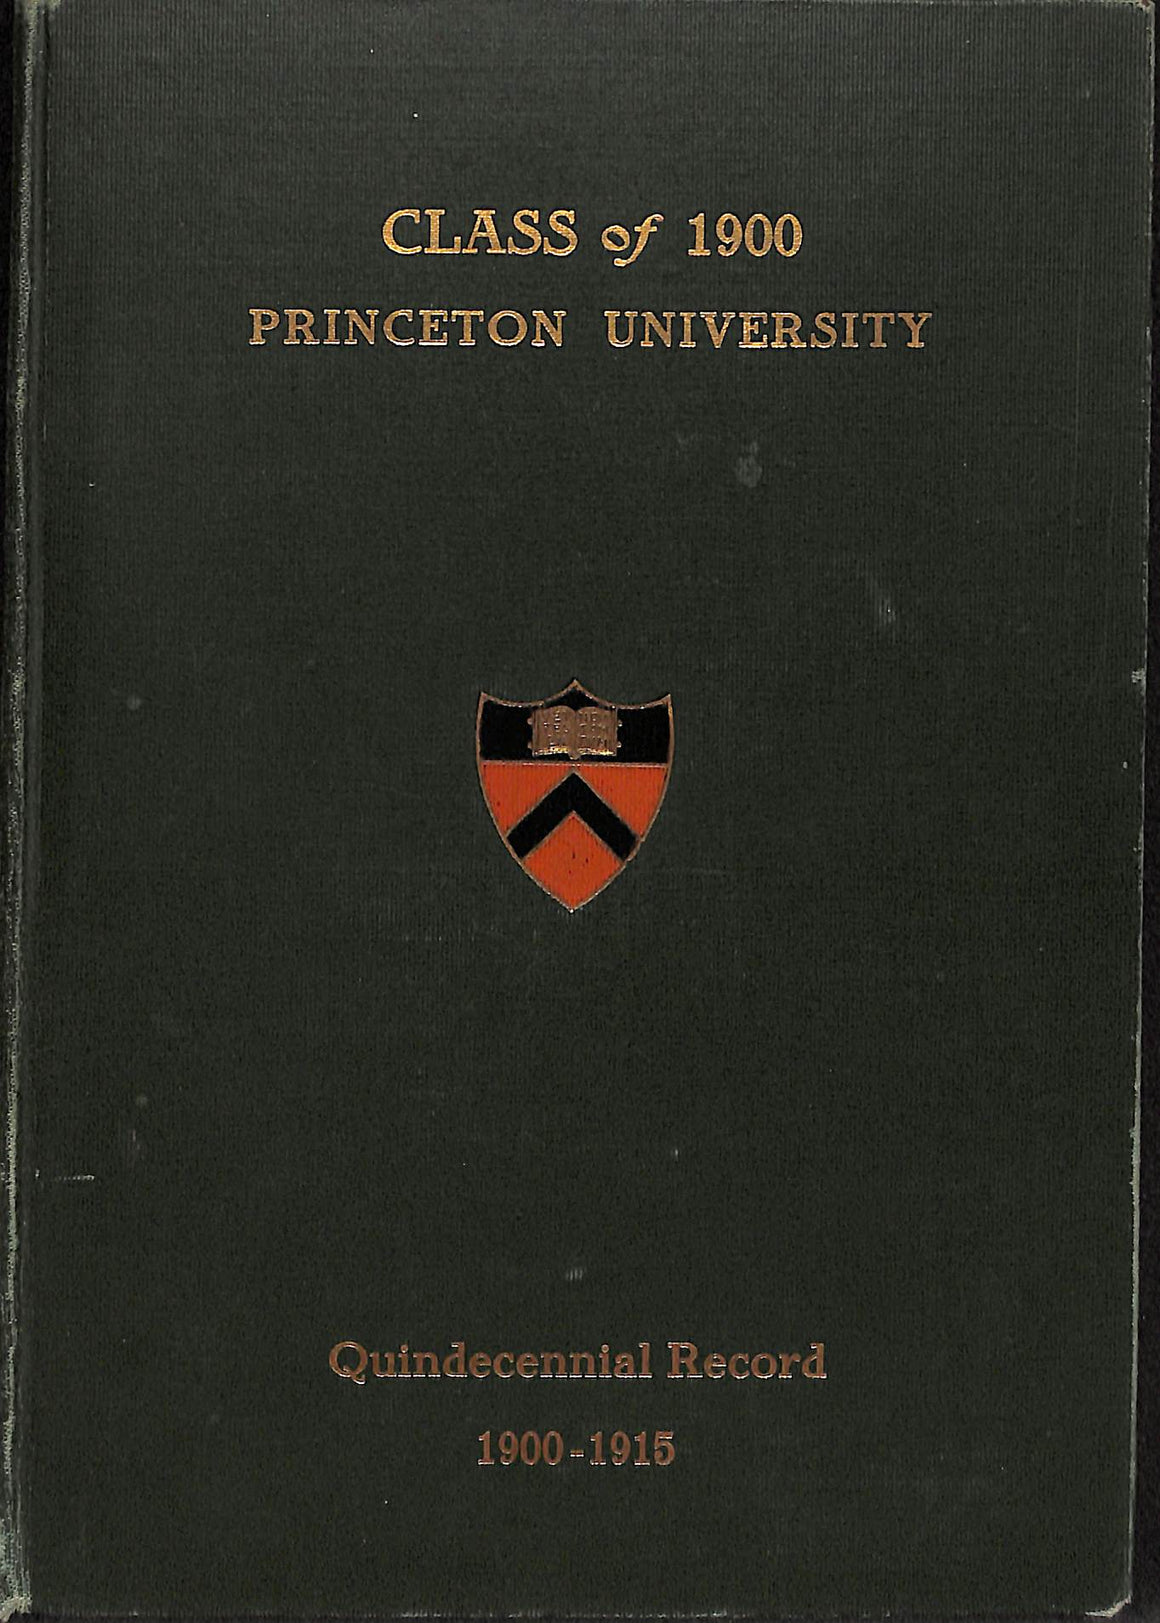 The Class of 1900 Princeton University: Quindecennial Record 1900-1915